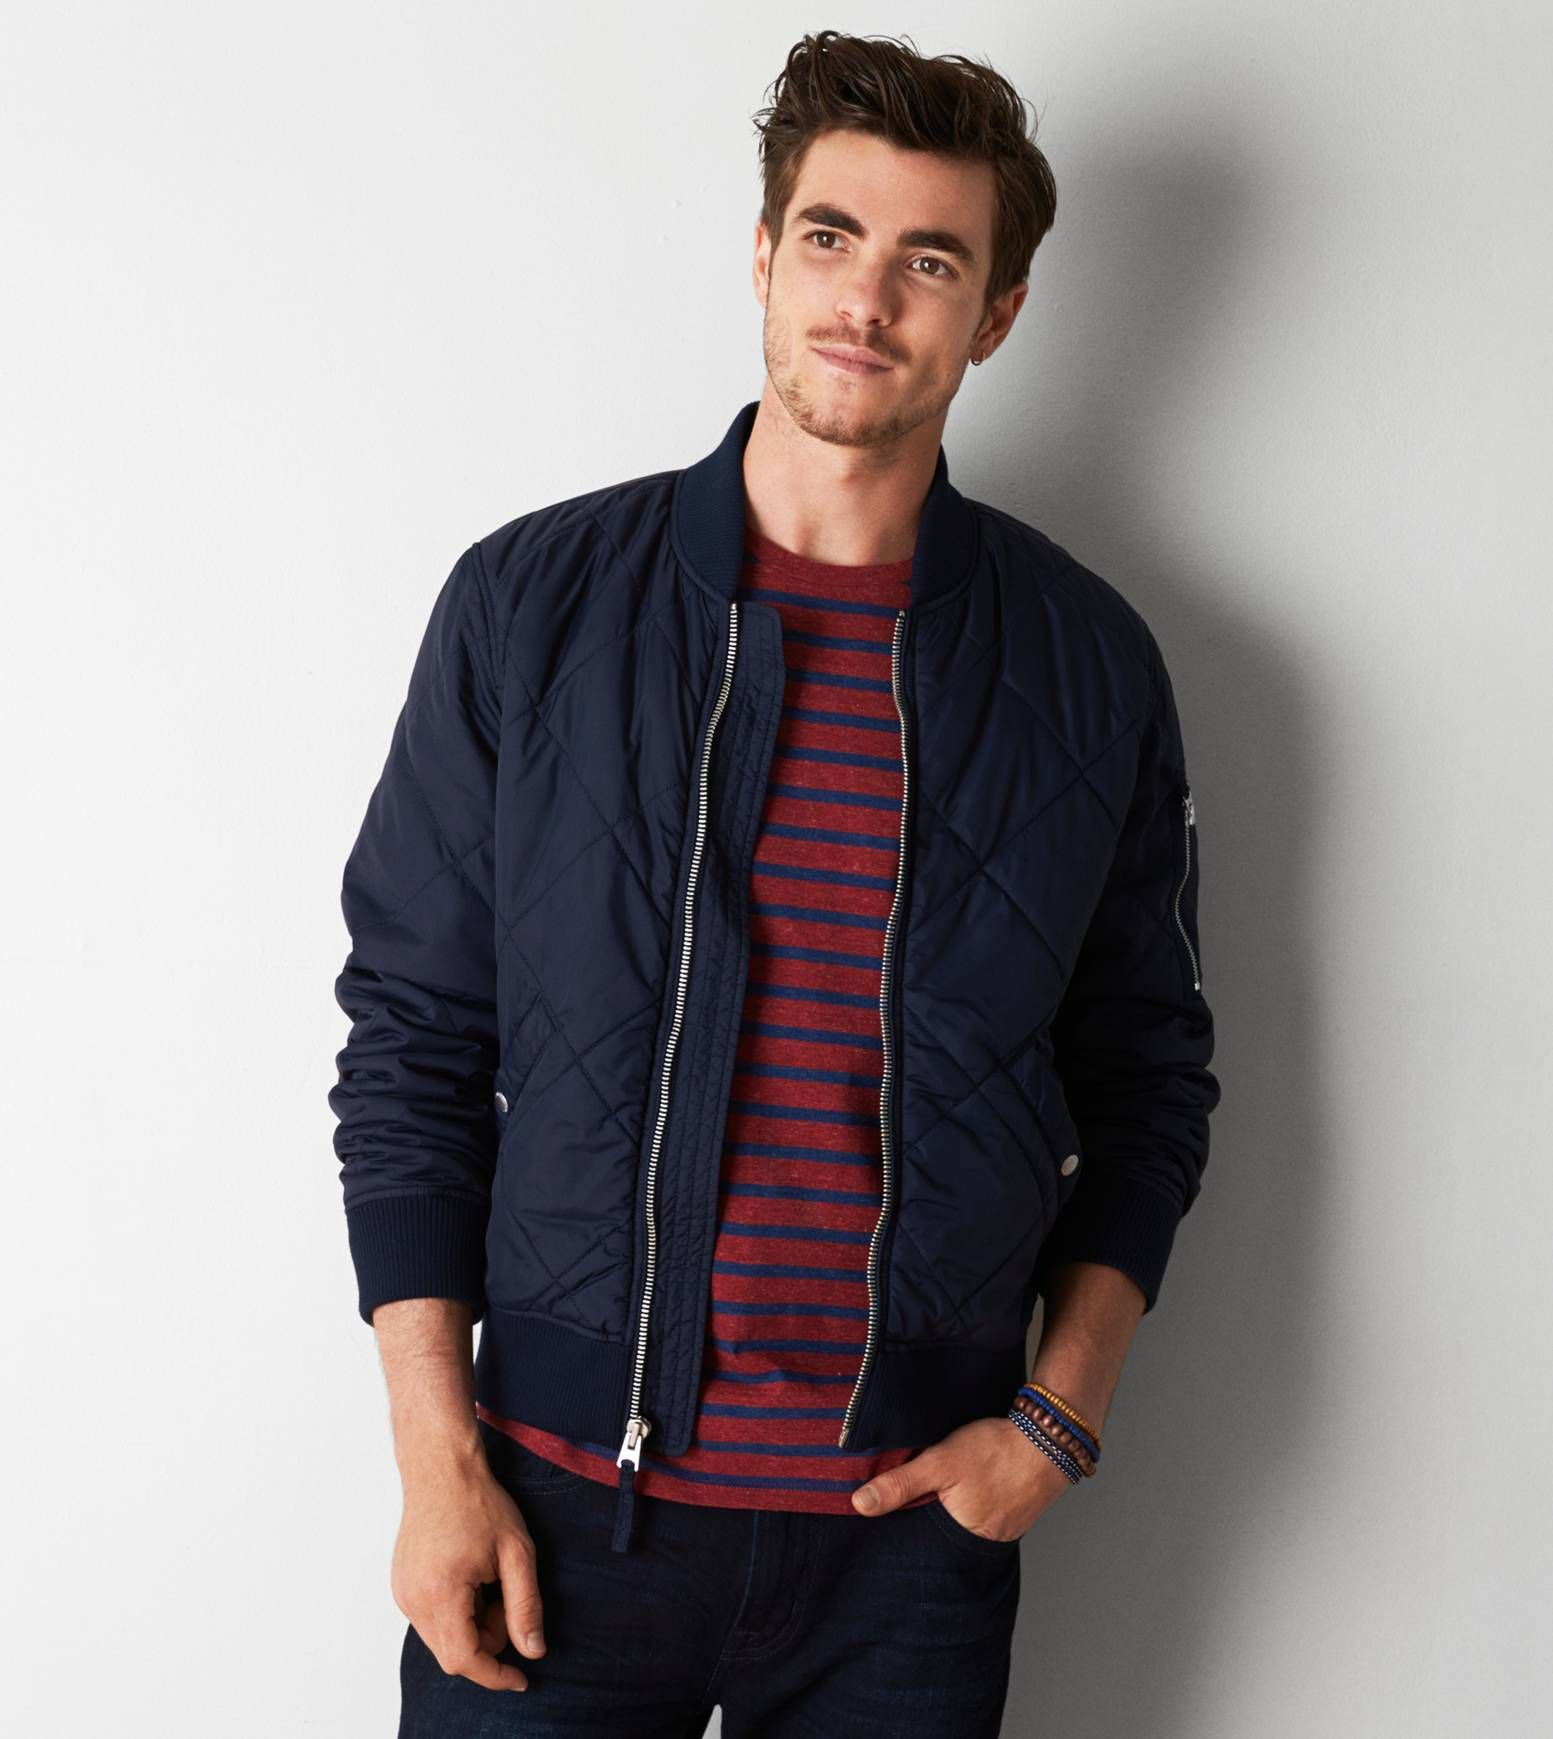 Navy AEO Quilted Bomber Jacket | Mens Fashion | Pinterest | Men's ... : navy quilted bomber jacket - Adamdwight.com